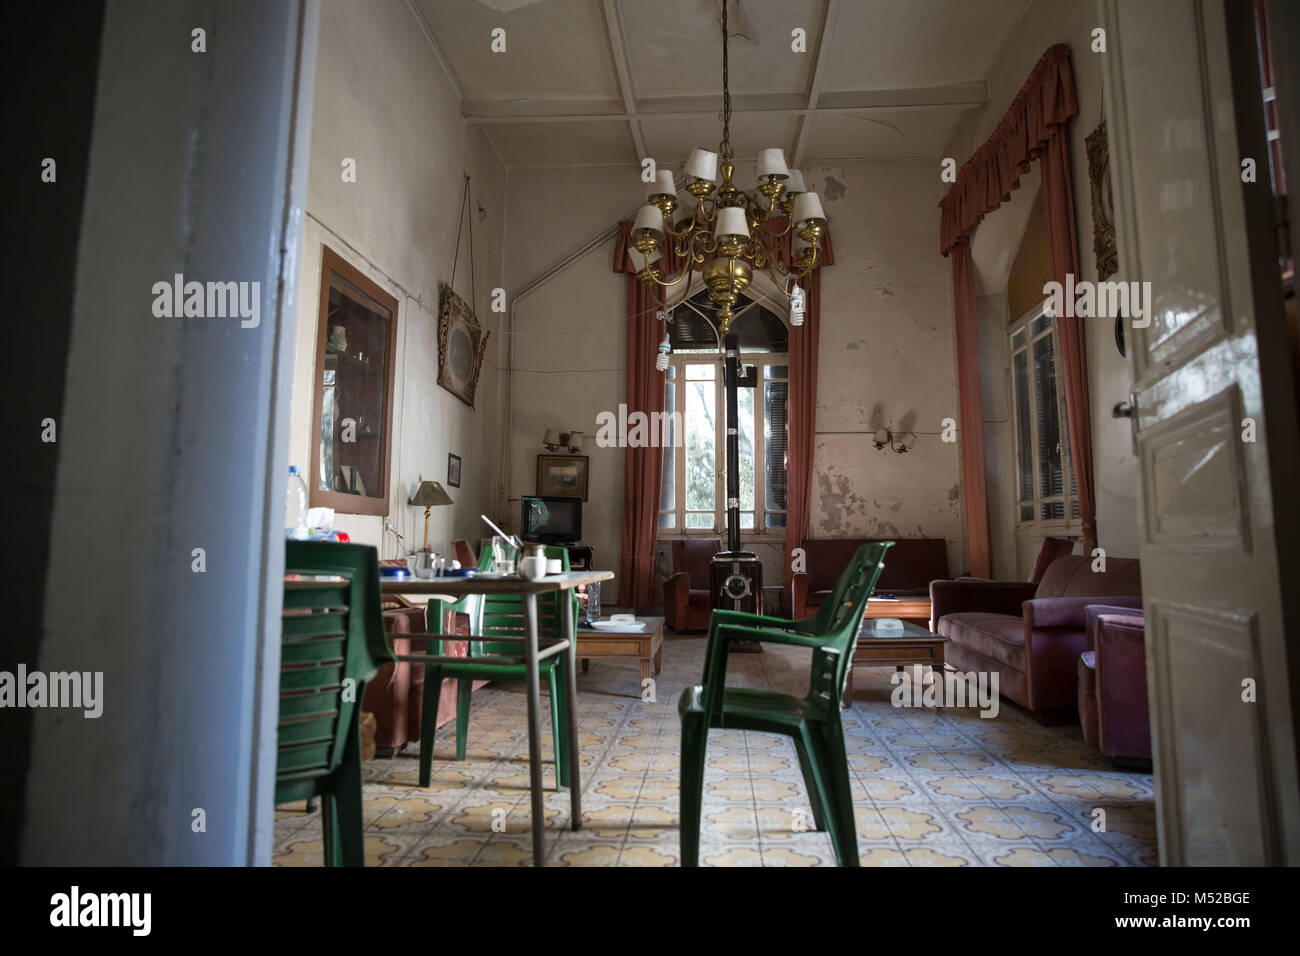 The lobby of the Baron Hotel in Aleppo. Rubina Tashjian, the widow of the hotel's former owner, said they stopped - Stock Image